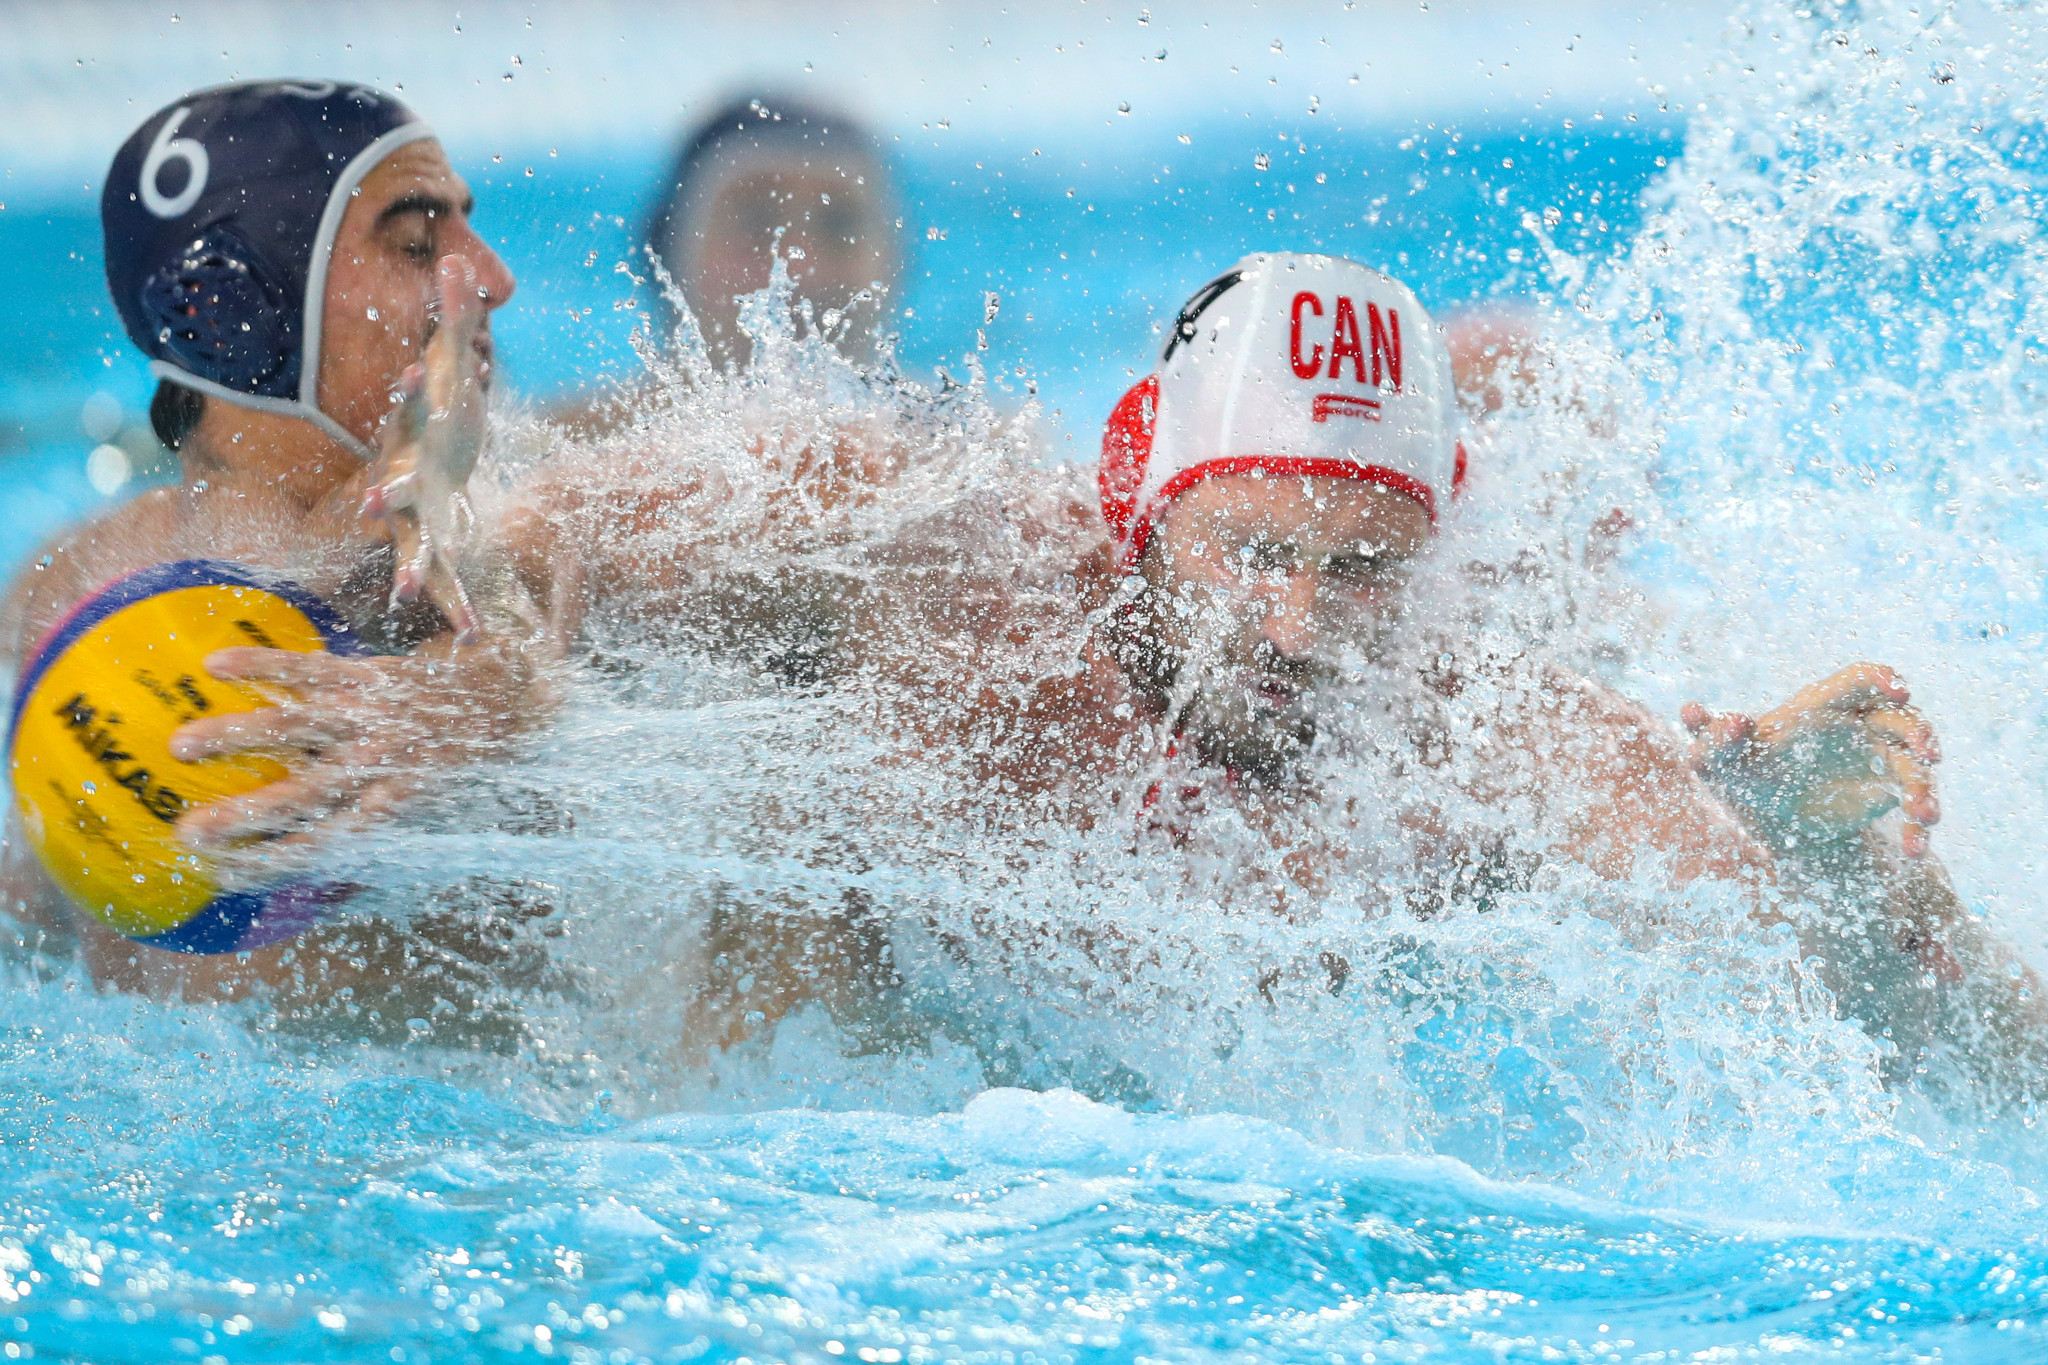 Canada's men's team will compete in a Tokyo 2020 qualifier later this month in Rotterdam ©Getty Images